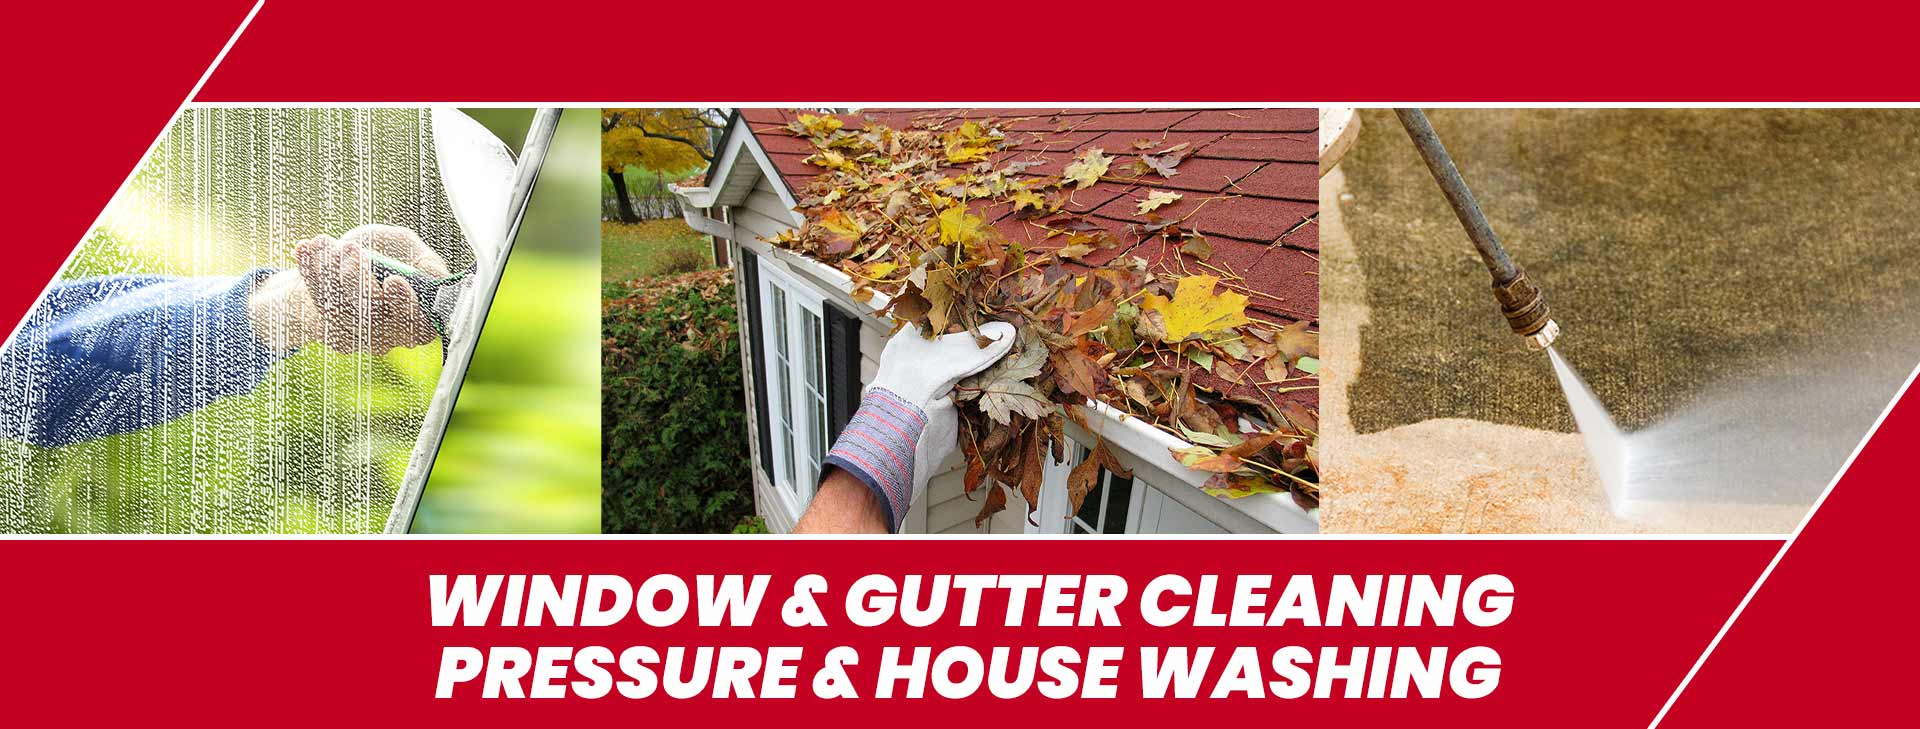 Dallas window and gutter cleaning